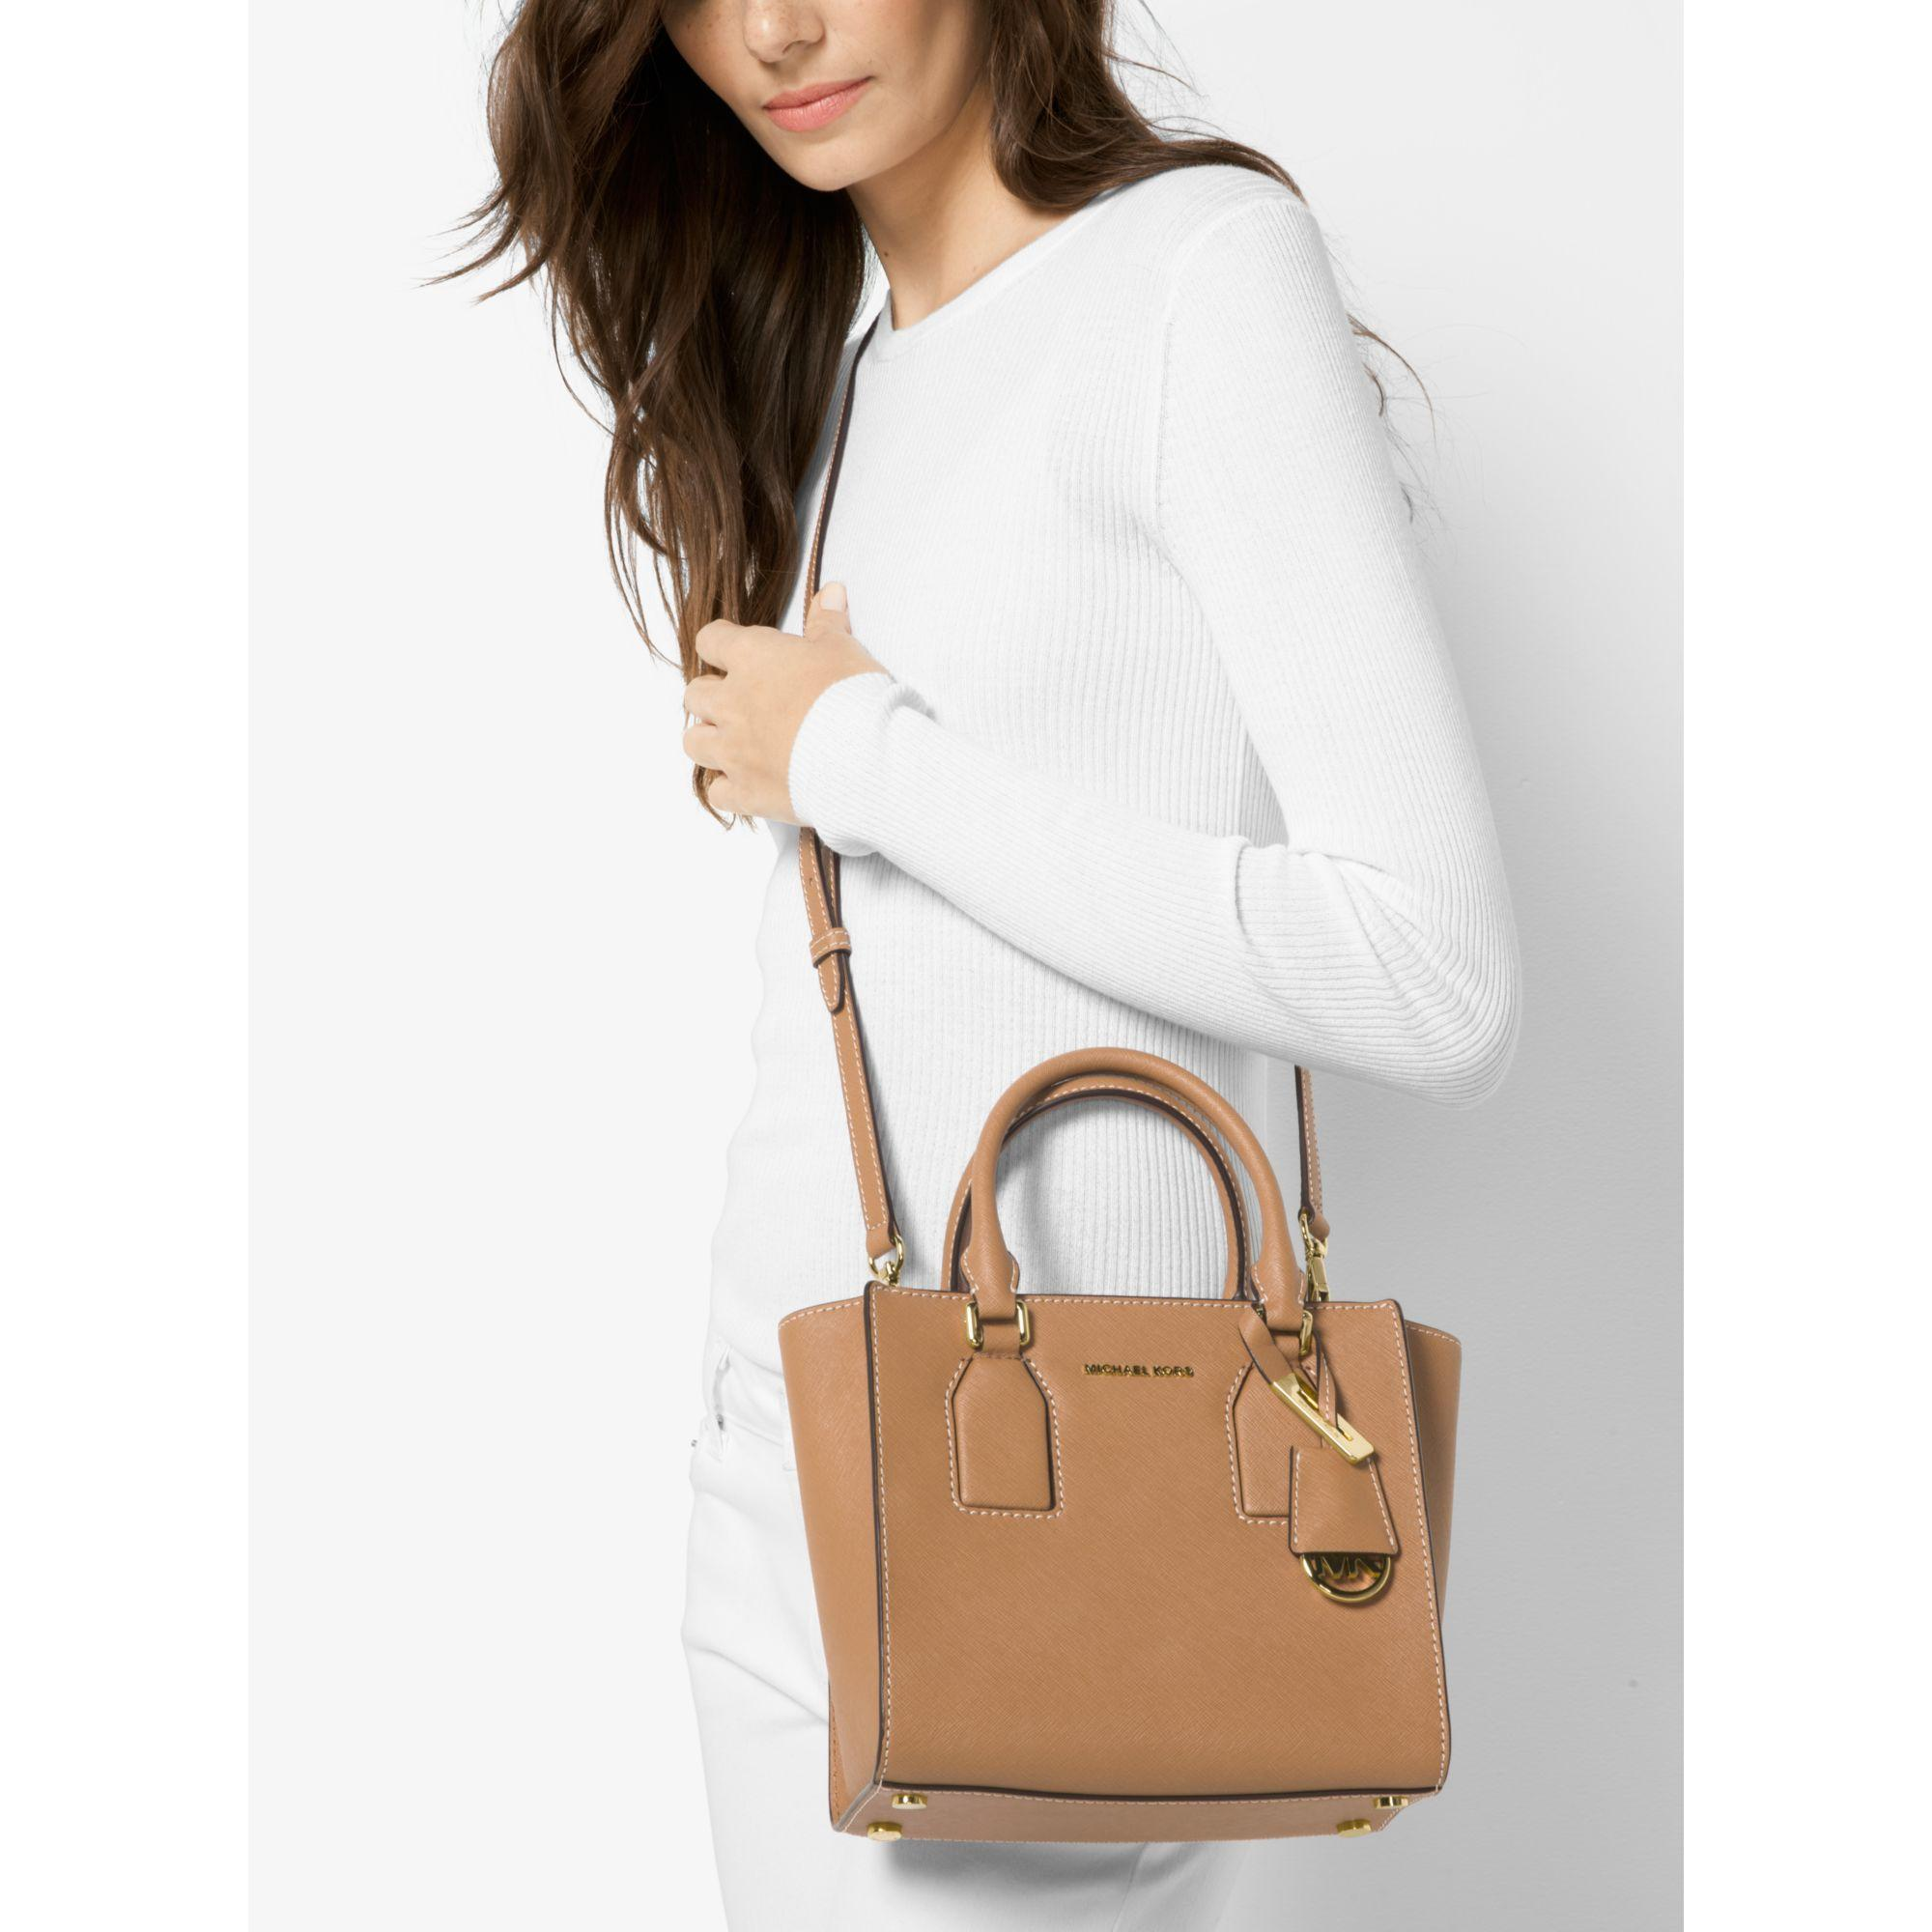 621475c689 Michael Kors Selby Leather Messenger - Lyst